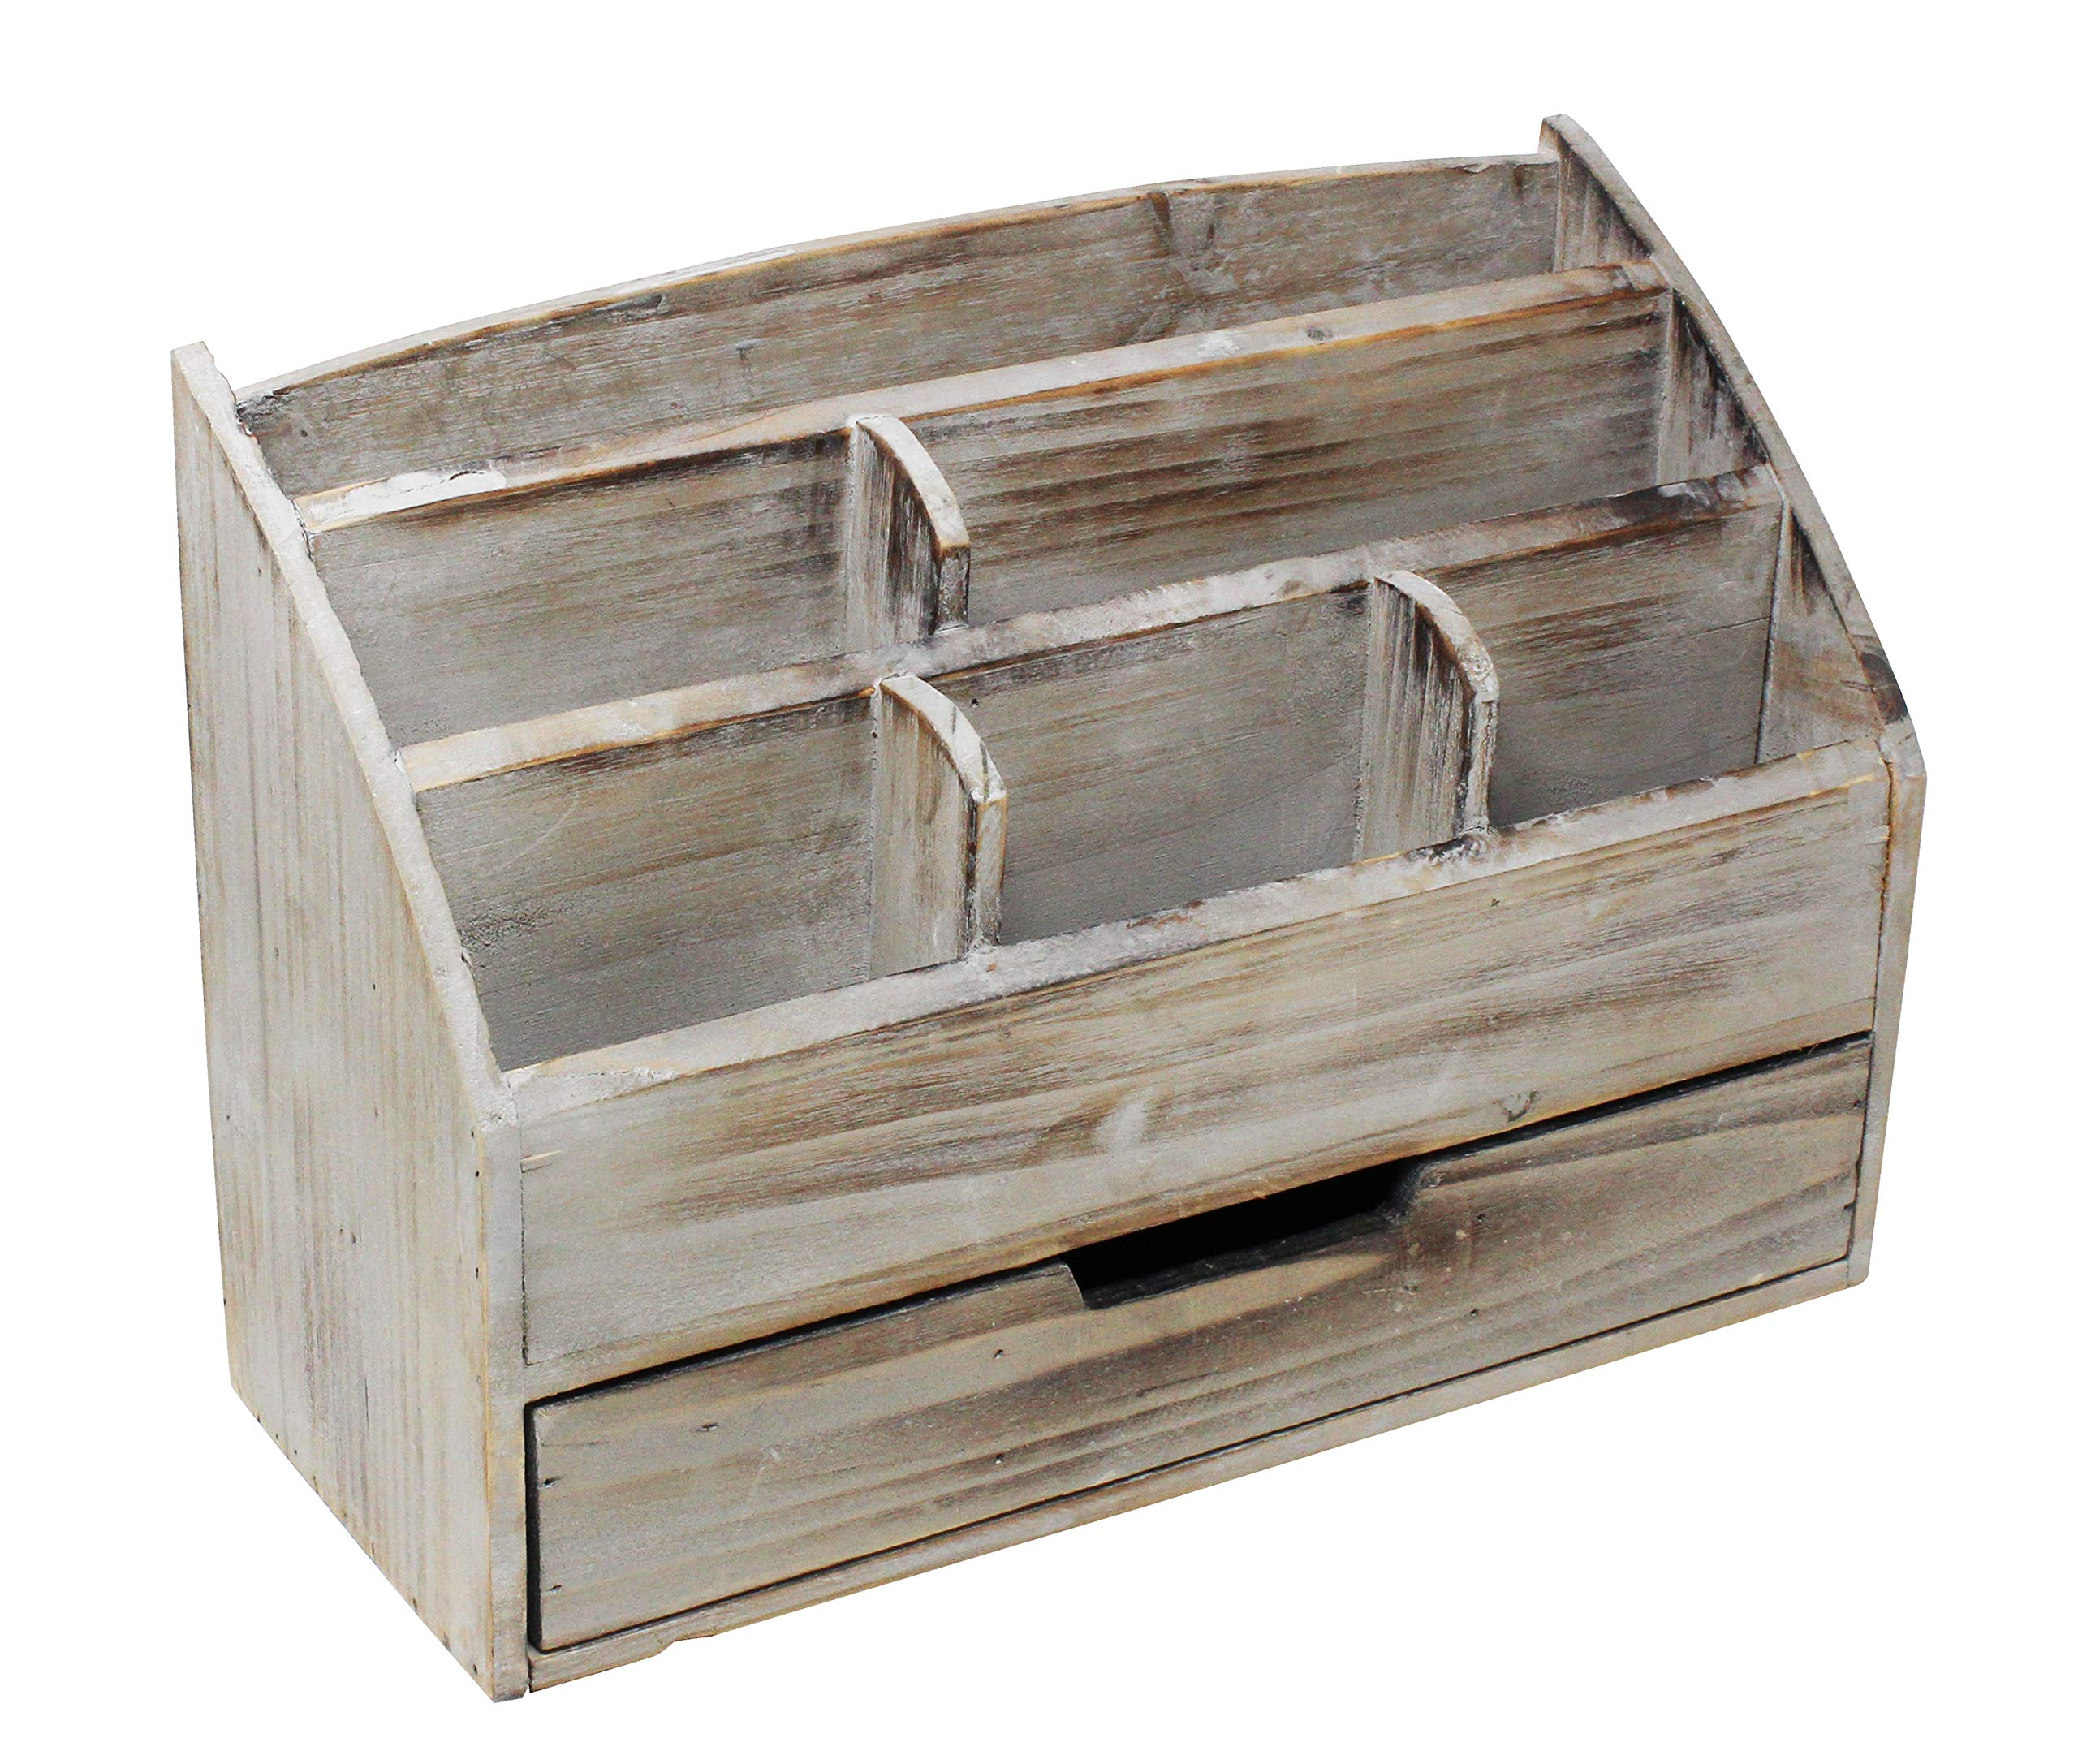 Vintage Rustic Wooden Office Desk Organizer & Mail Rack for Desktop, Tabletop, or Counter - Distressed Torched Wood – for Office Supplies, Desk Accessories, or Mail